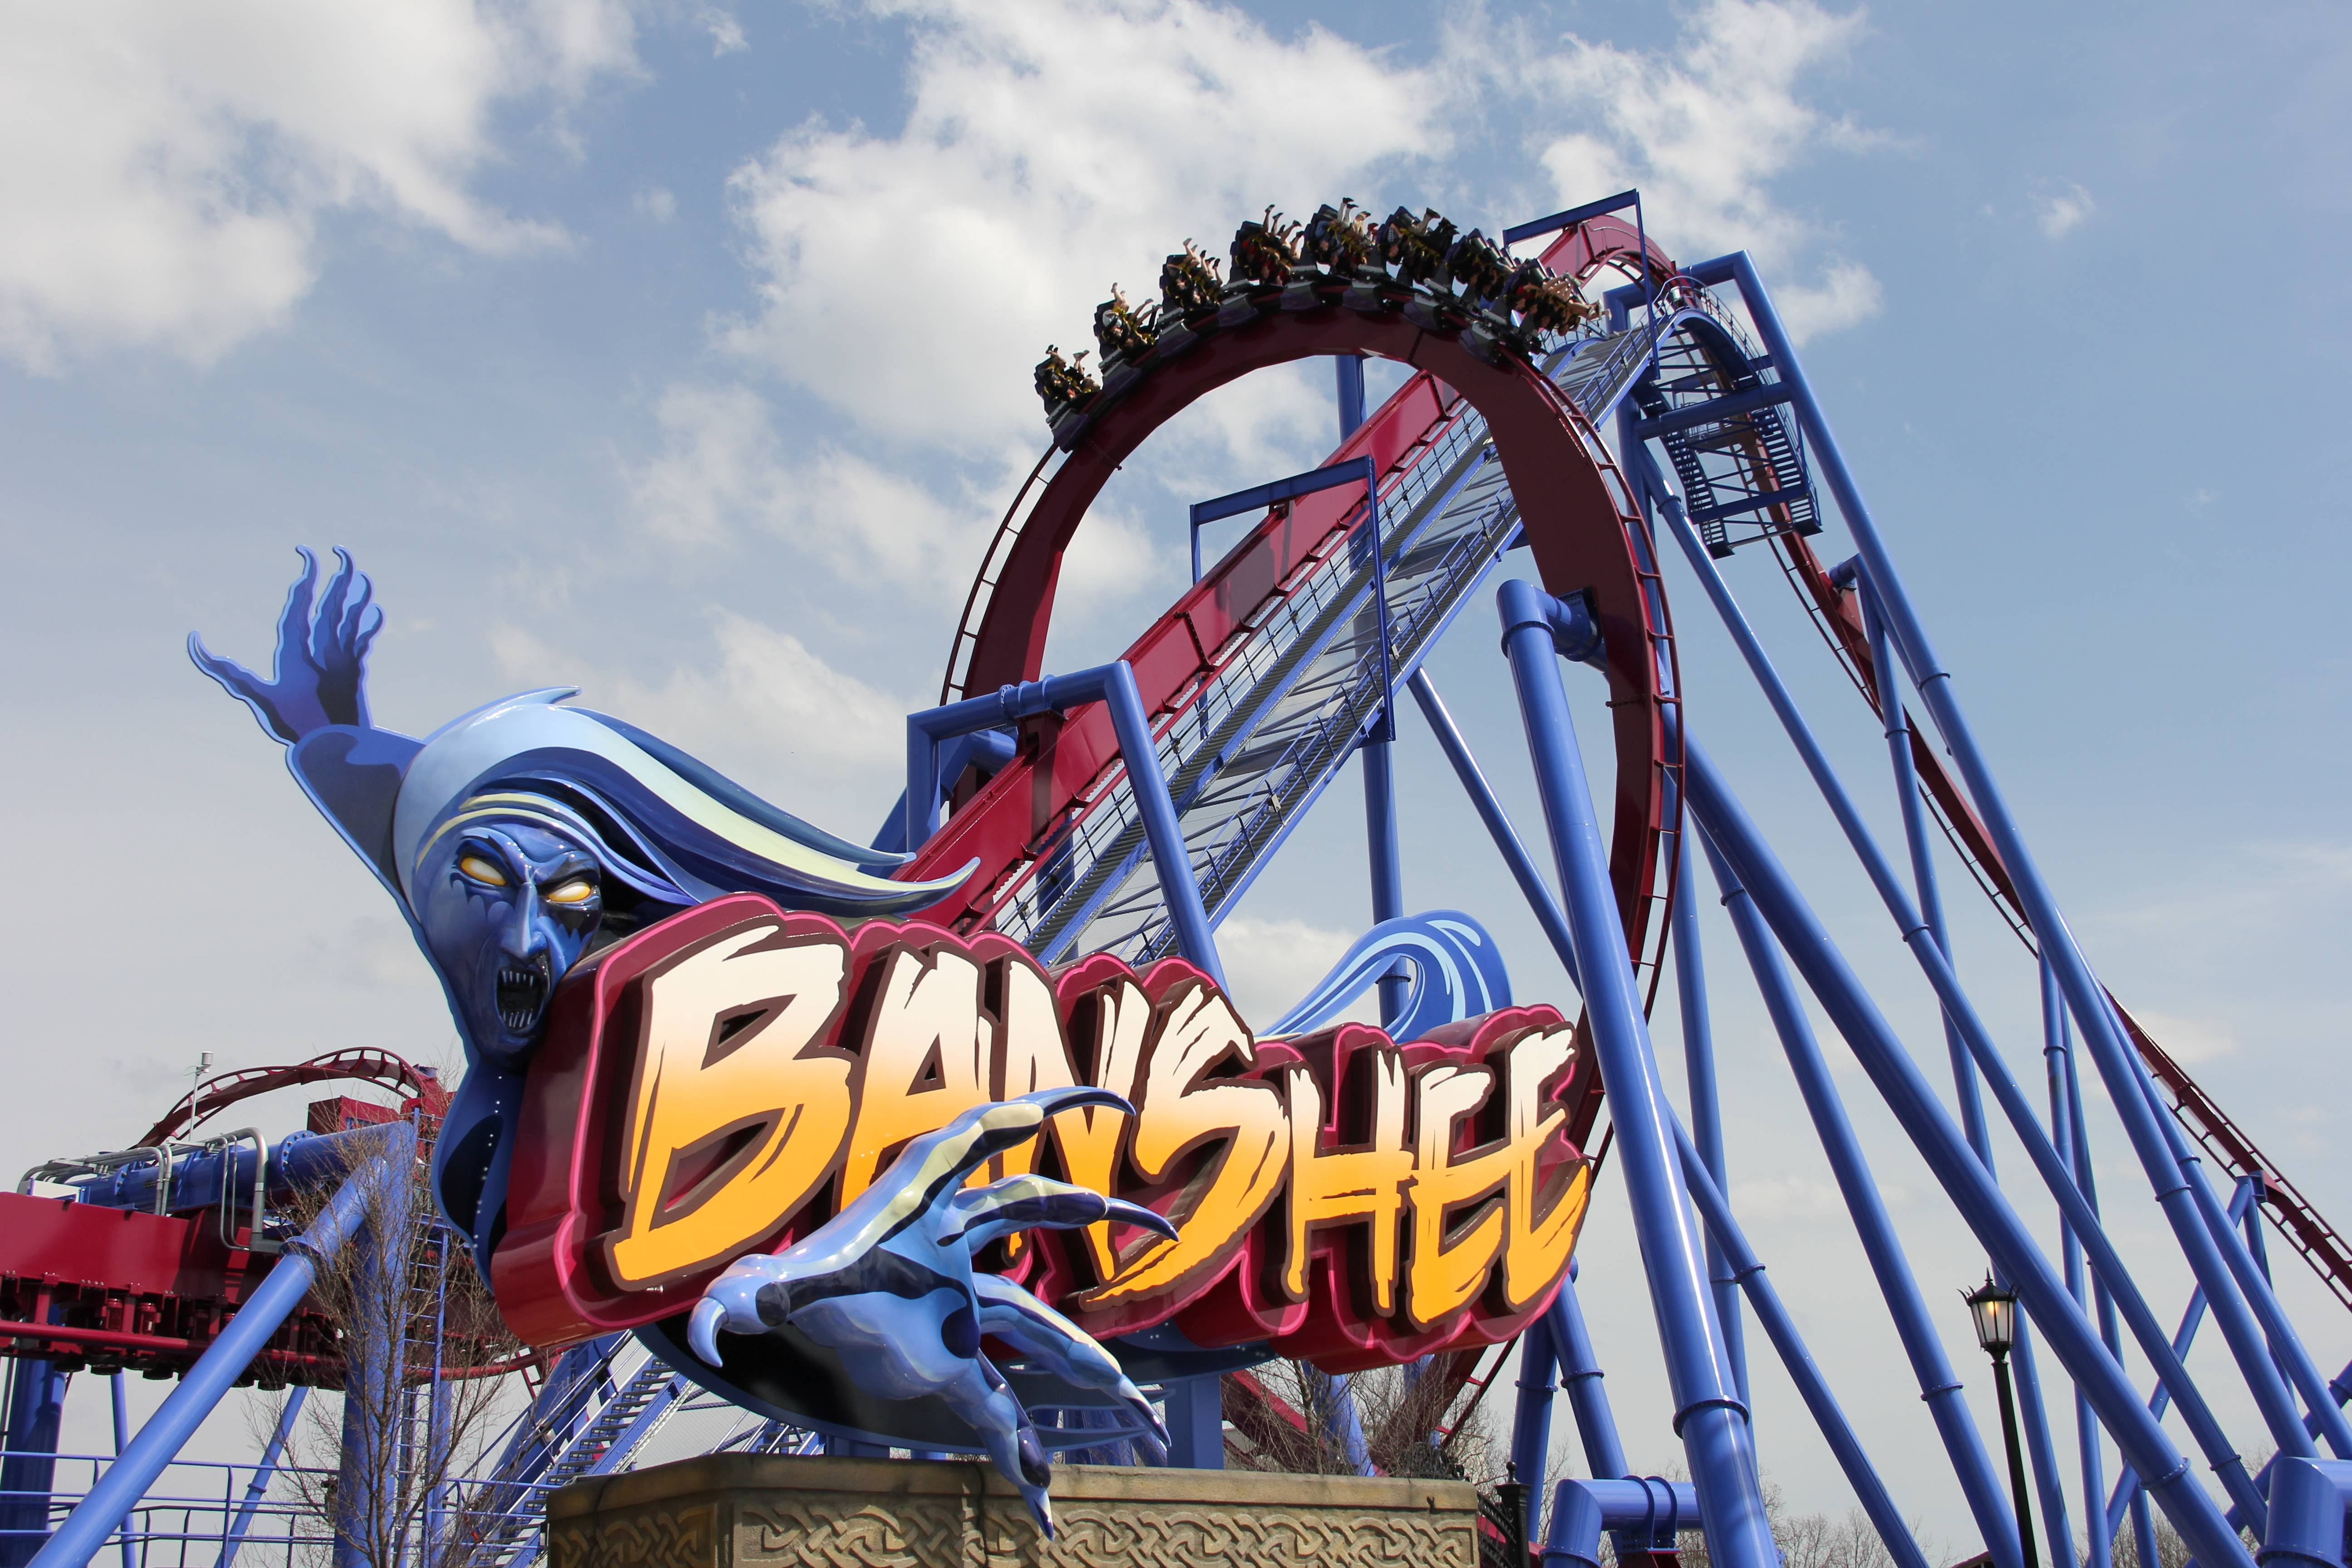 This undated image provided by Kings Island amusement park in Kings Island, Ohio, near Cincinnati, shows the recently opened Banshee roller coaster. It's named for a wailing mythological messenger from the underworld and includes a 167-foot lift hill and a 150-foot curved first drop.